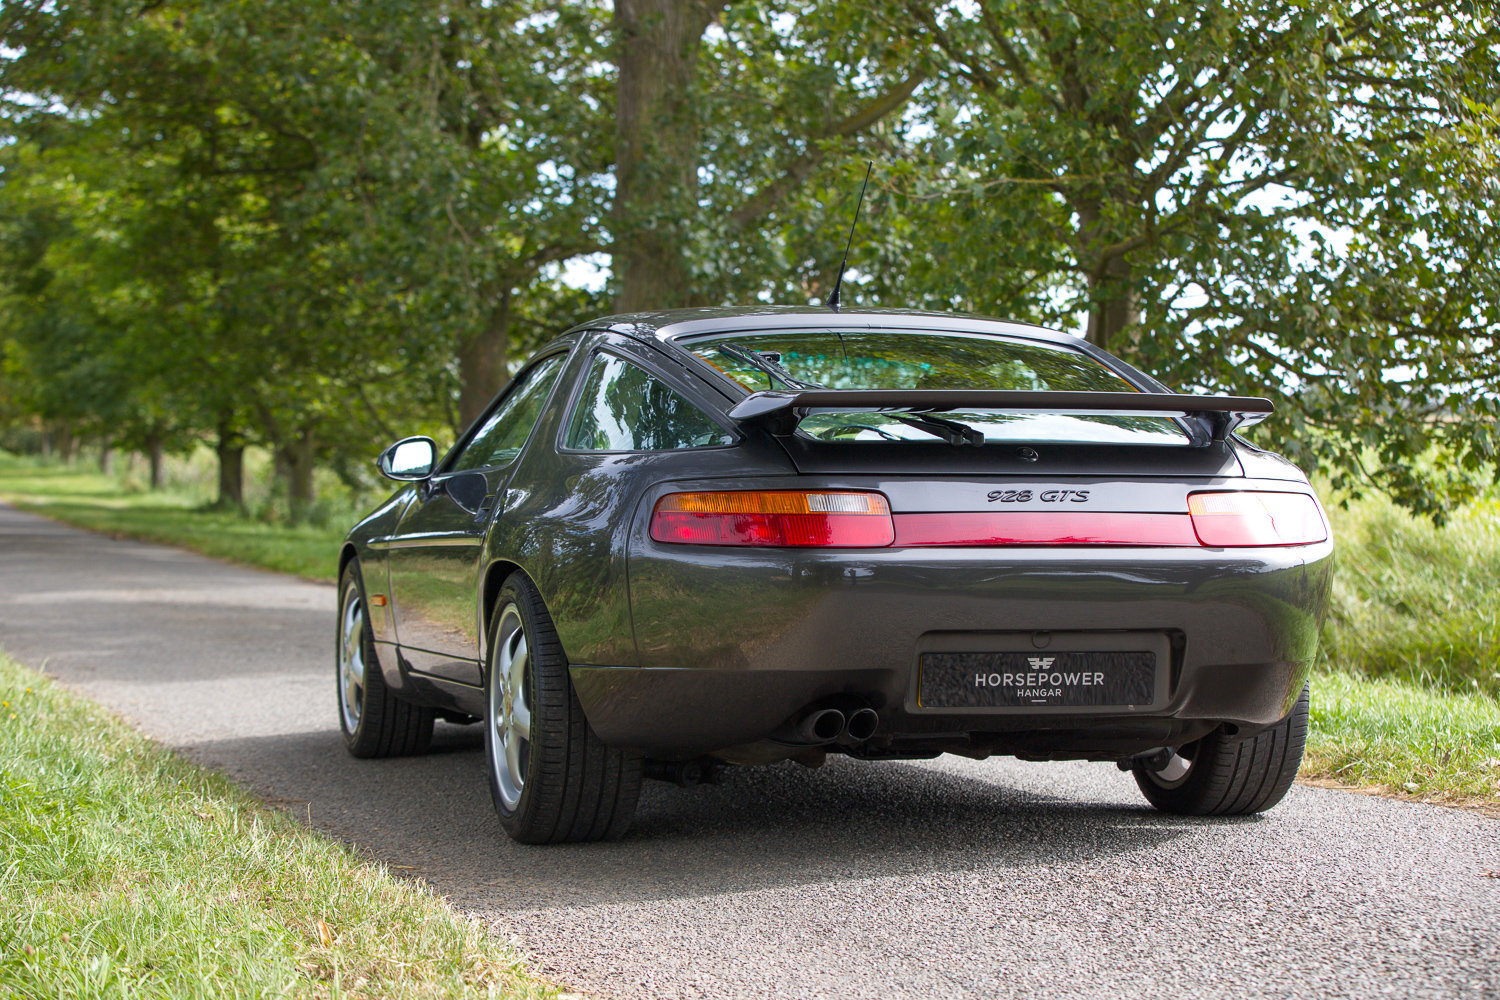 1994 PORSCHE 928 GTS - EXTREMELY PRESENTABLE UK SUPPLIED RHD CAR For Sale (picture 2 of 6)